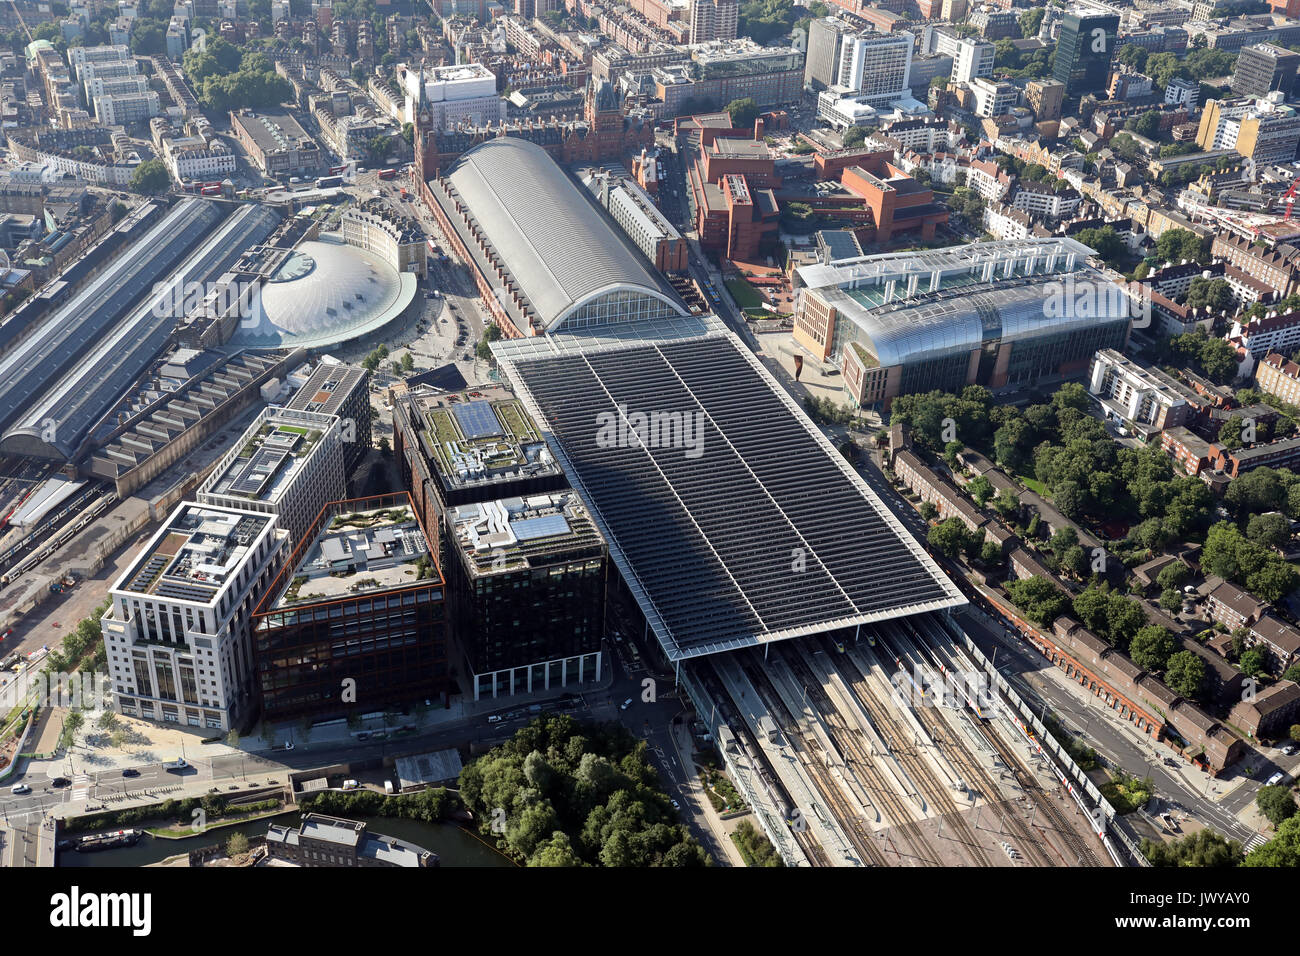 aerial view of St Pancras & Kings Cross railway stations, London, UK - Stock Image